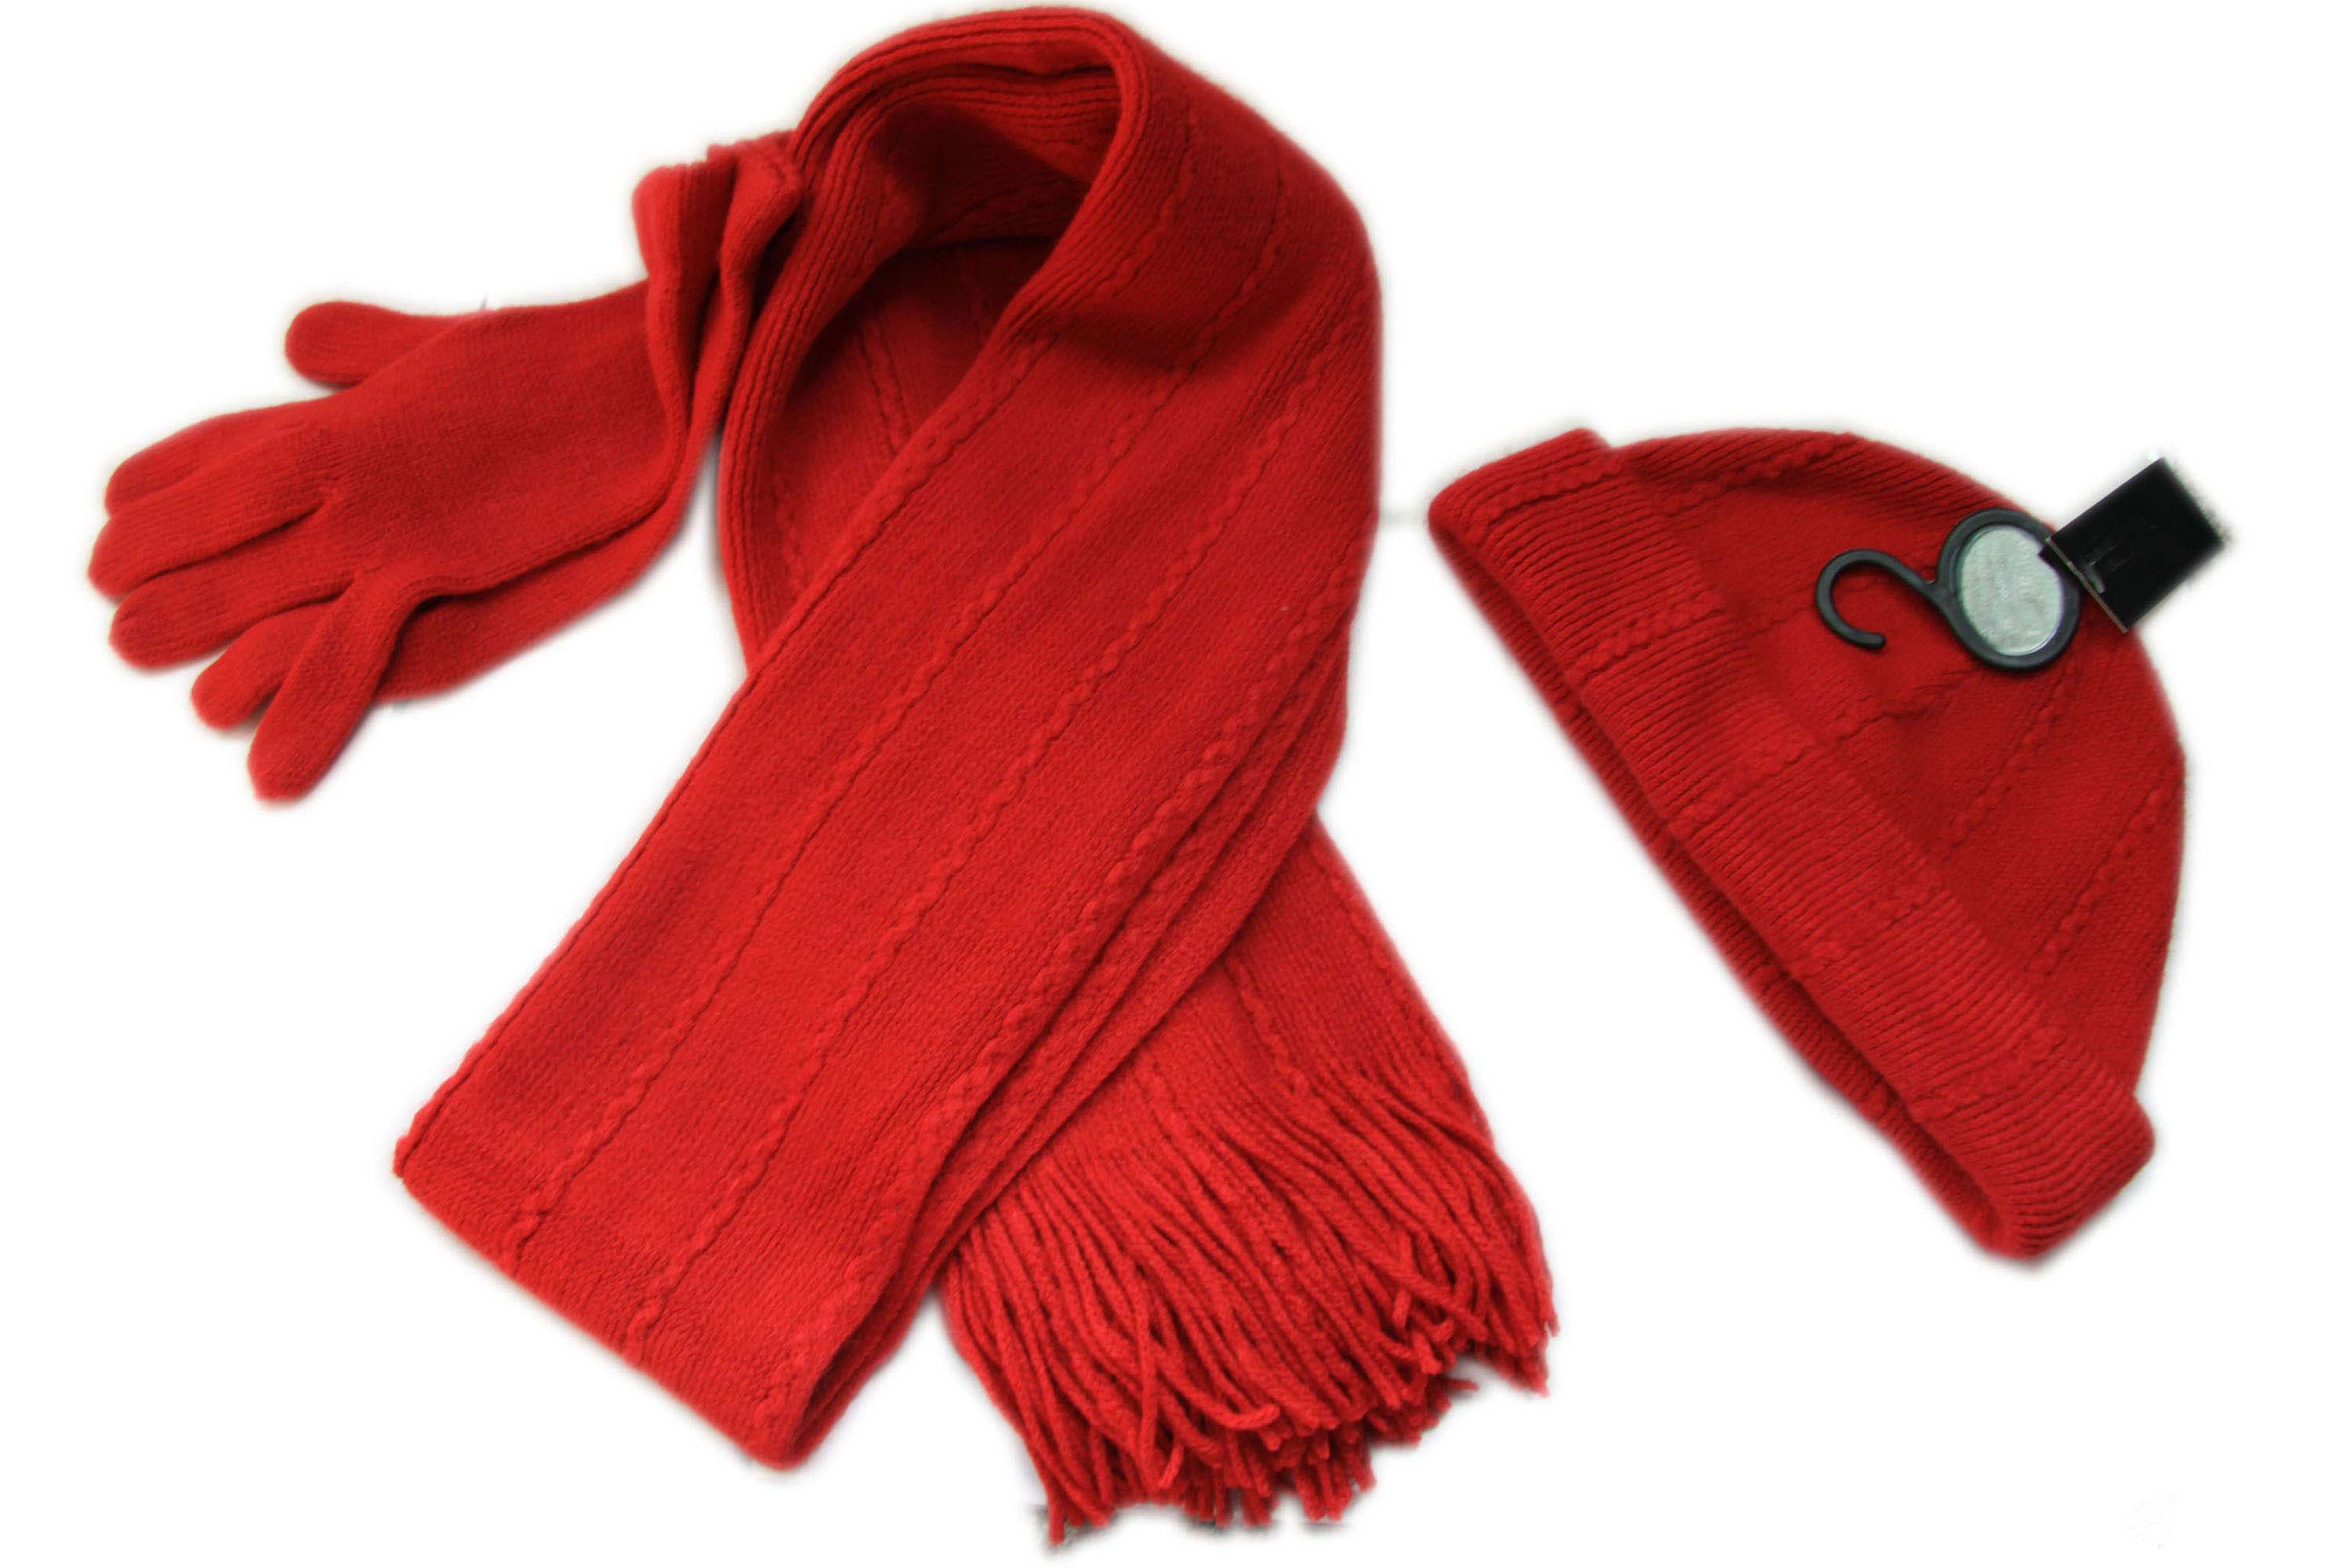 Hats clipart scarf. And gloves suggest scarves